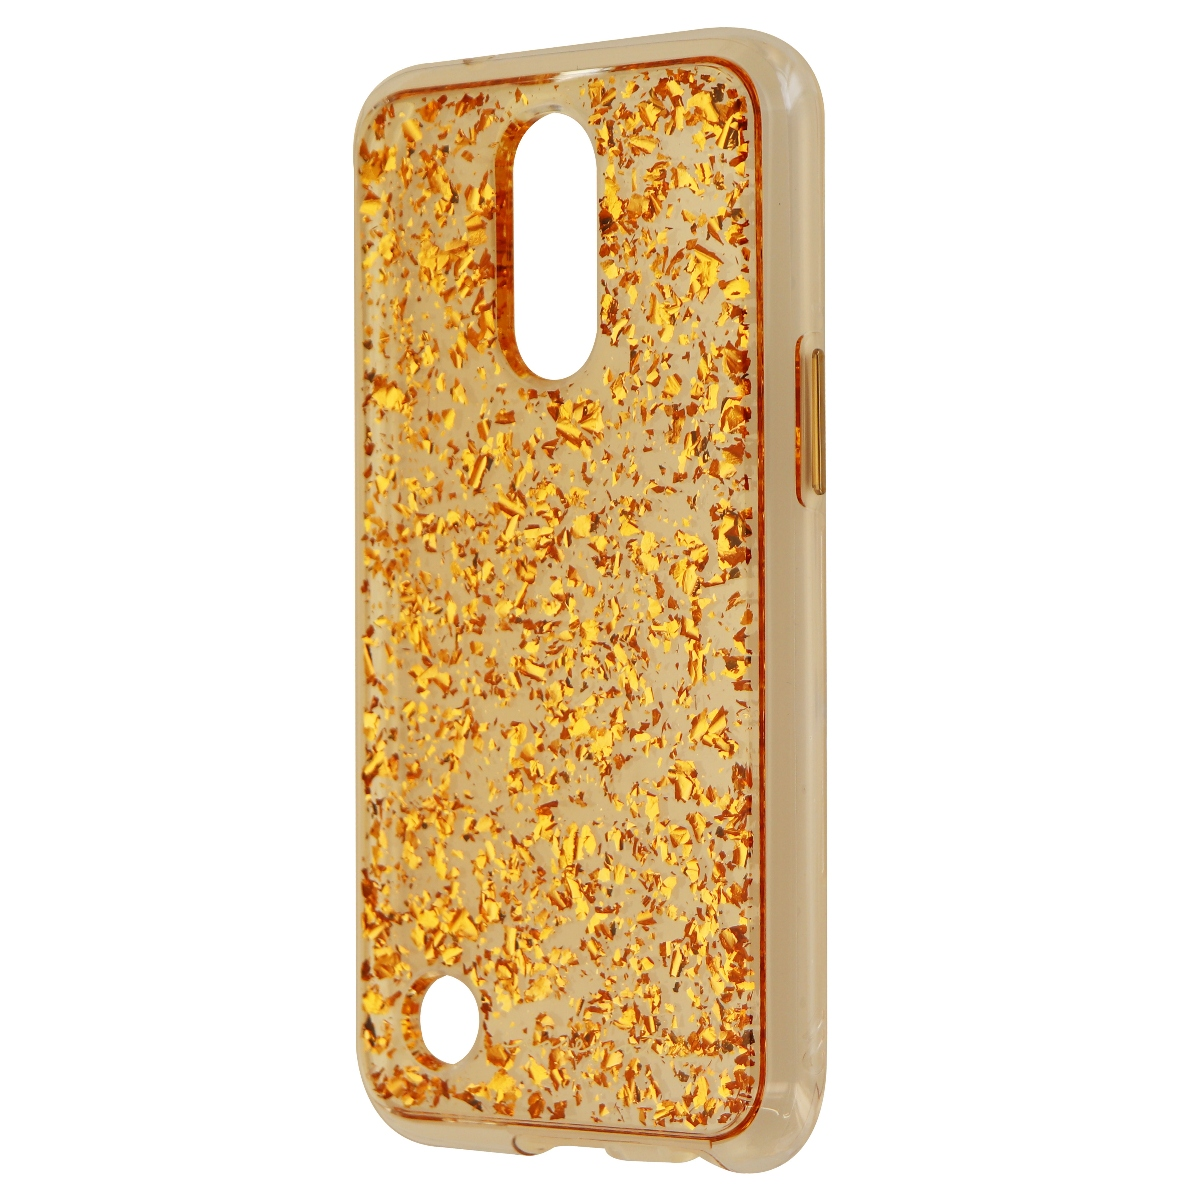 Case Mate Karat Series Protective Case Cover for LG K20 Plus - Clear Rose Gold